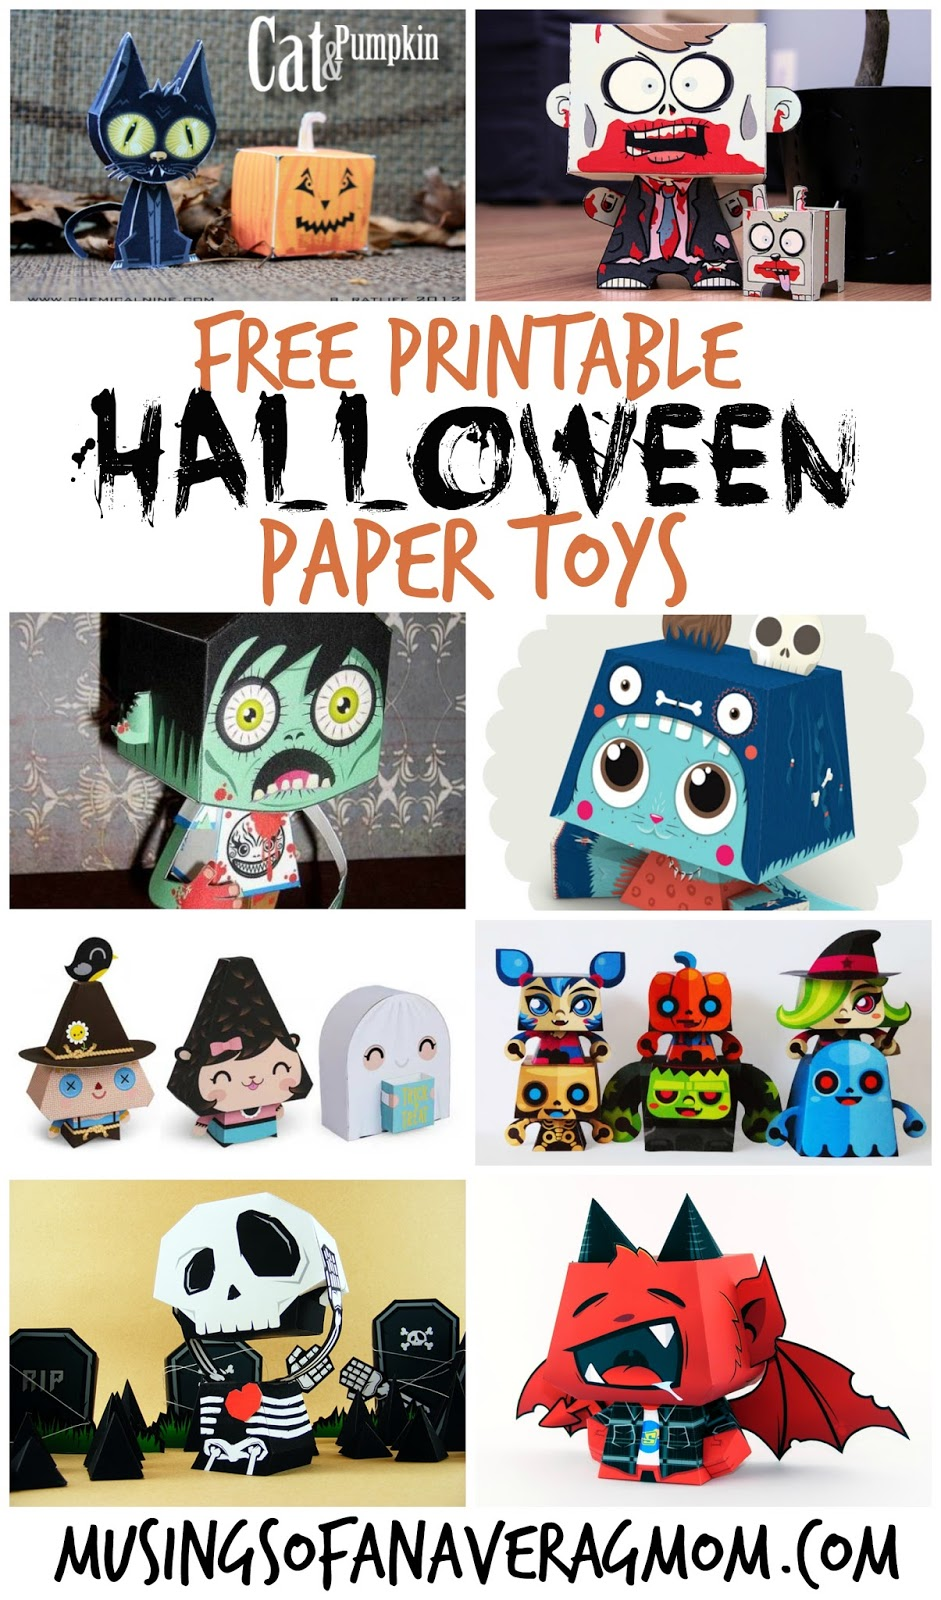 graphic regarding Printable Halloween Paper referred to as Musings of an Typical Mother: Halloween Paper Crafts